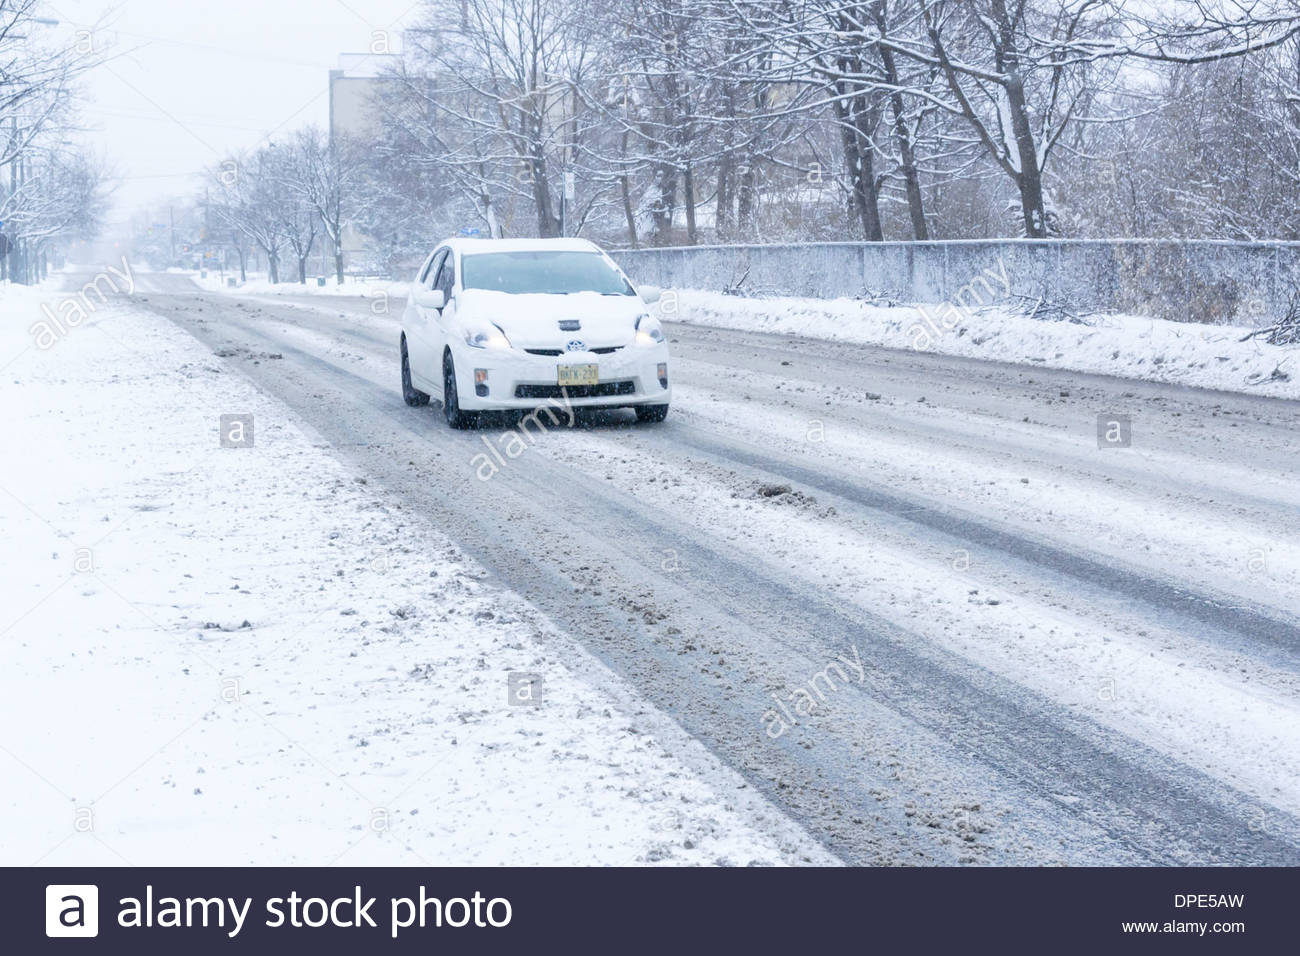 Car on day so cold that salt ineffective in melting snow creating a slippery slush on road in Toronto Ontario Canada - Stock Image